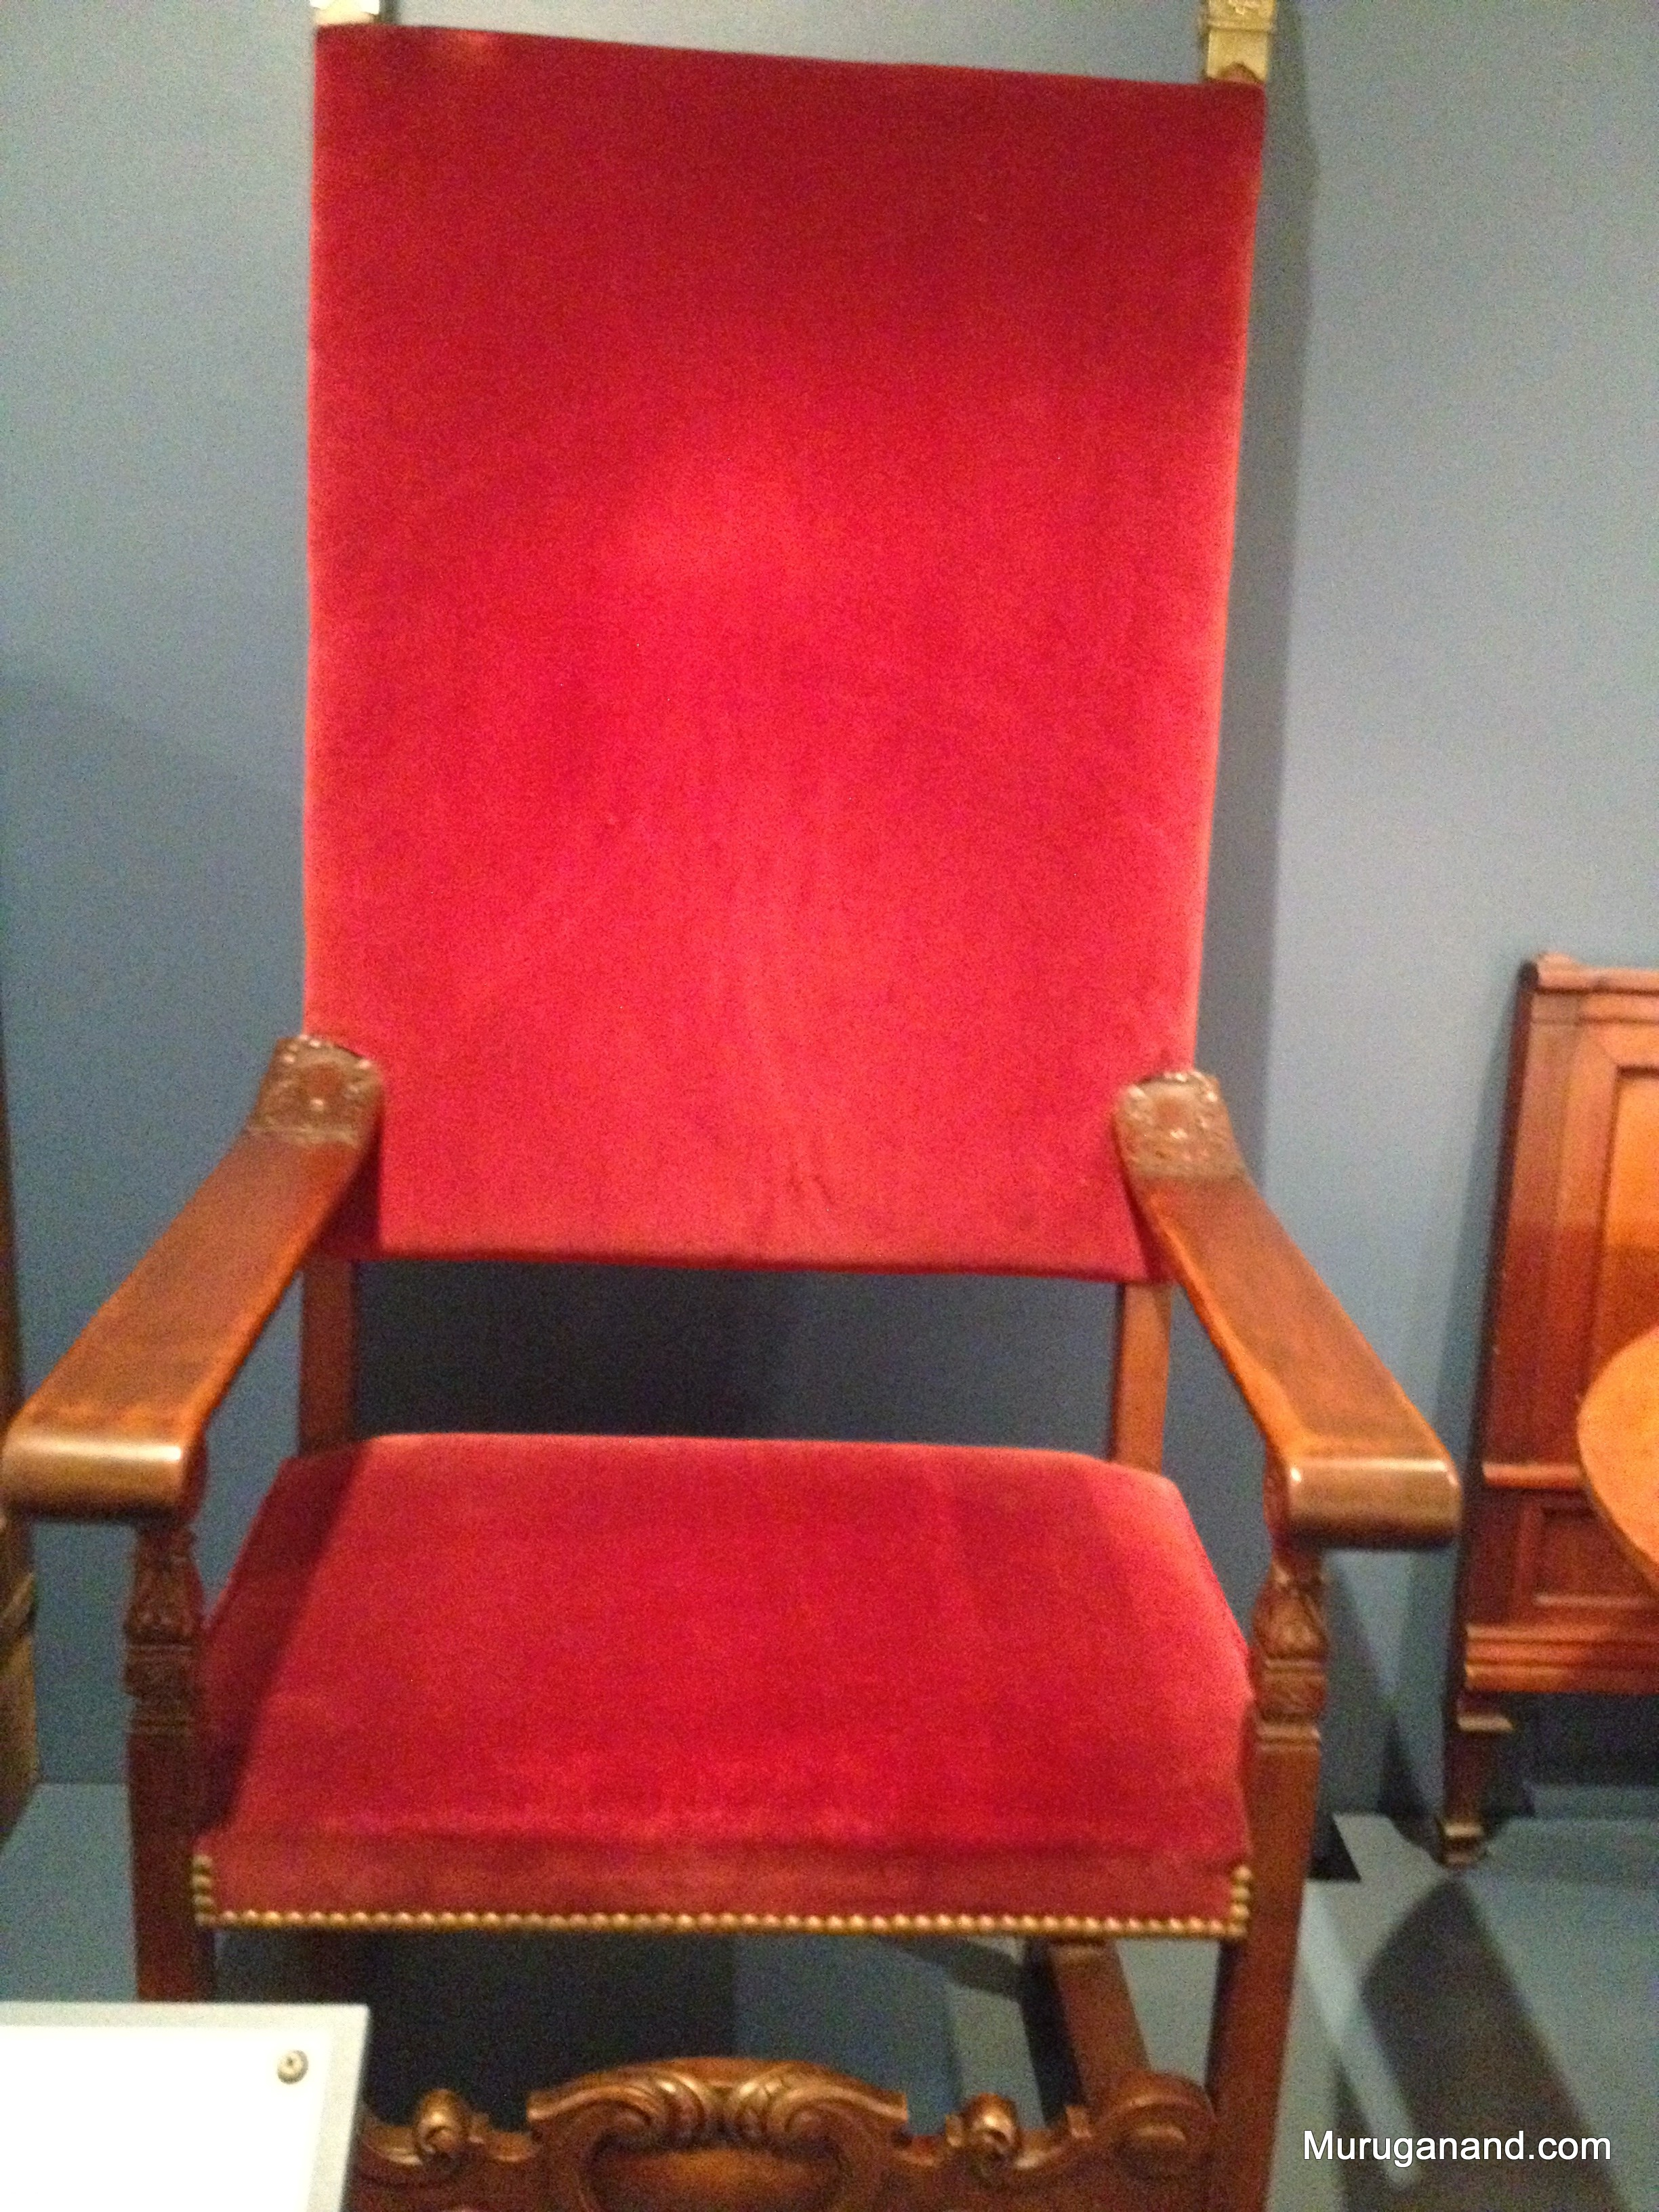 Chair (1880-90)Birch with velour upholsterey